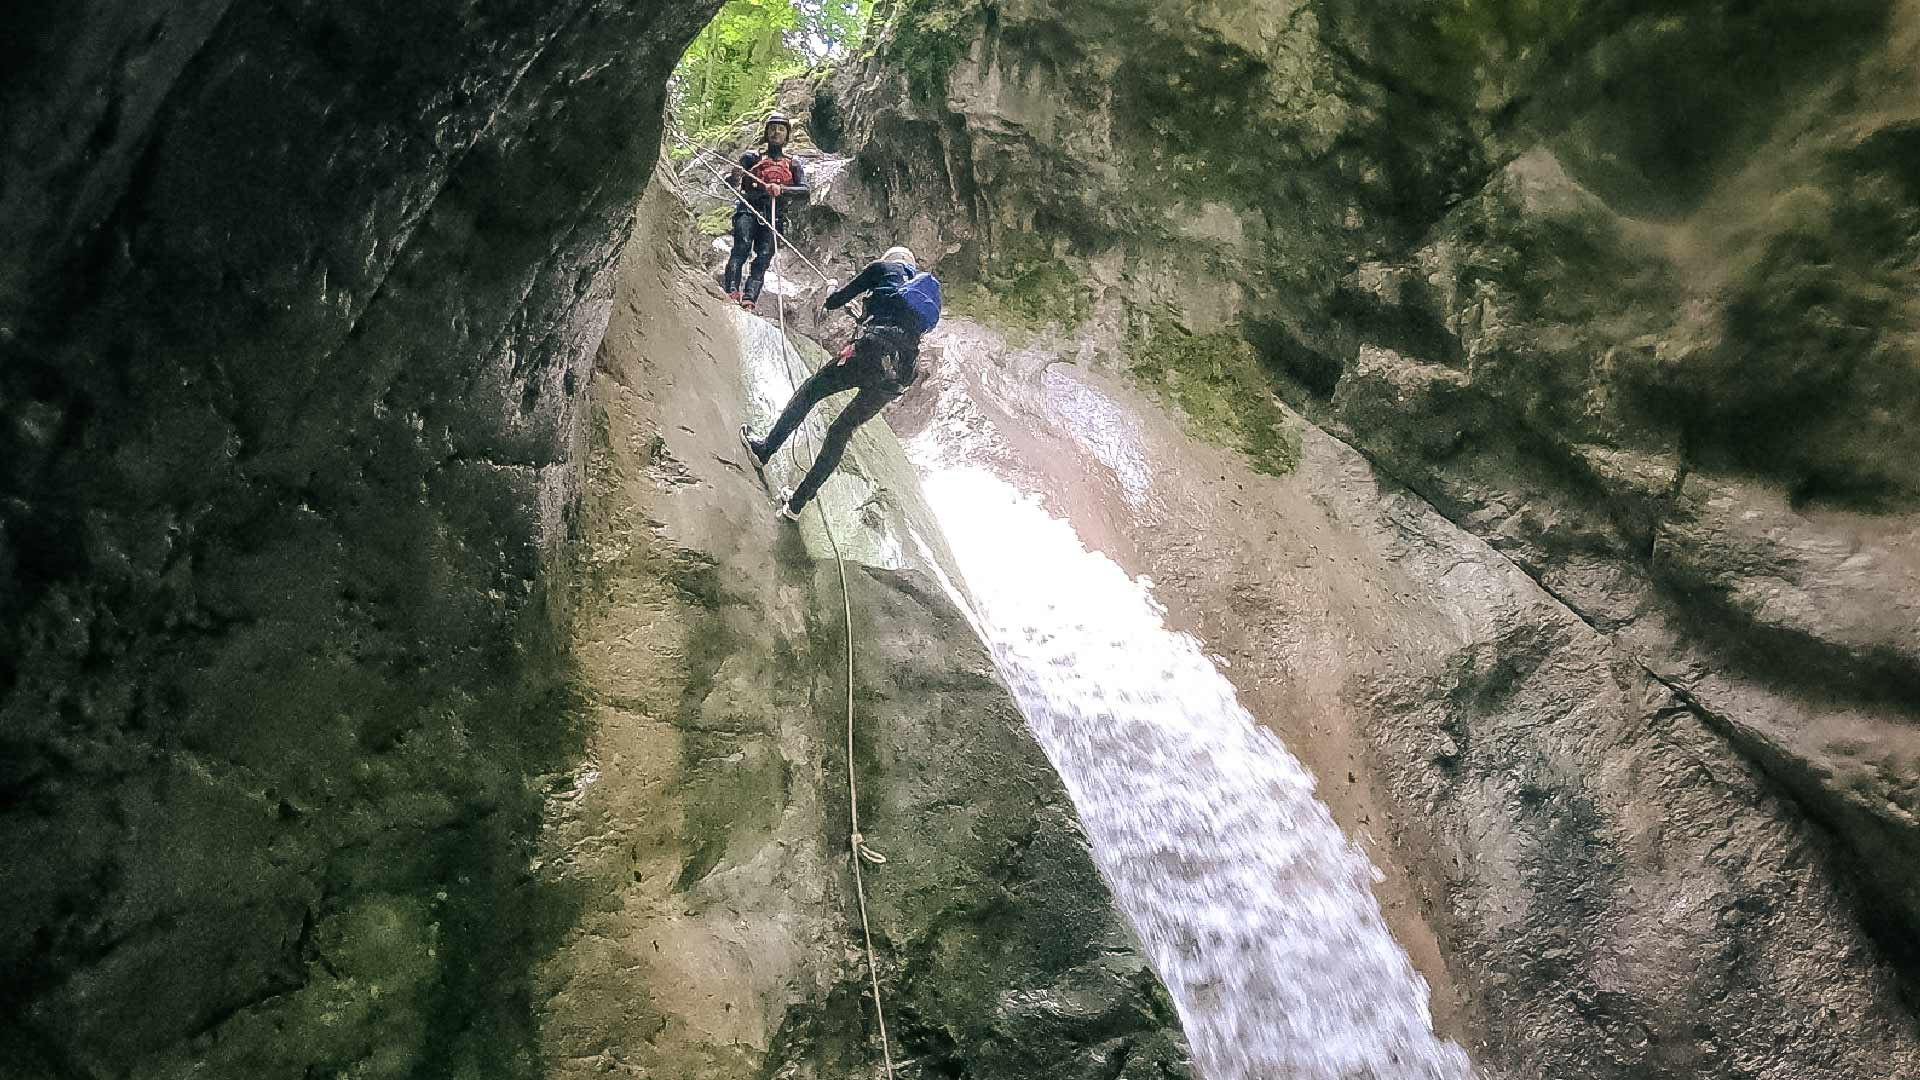 canyoning-outdoor-adventure-abseilen-wasserfall